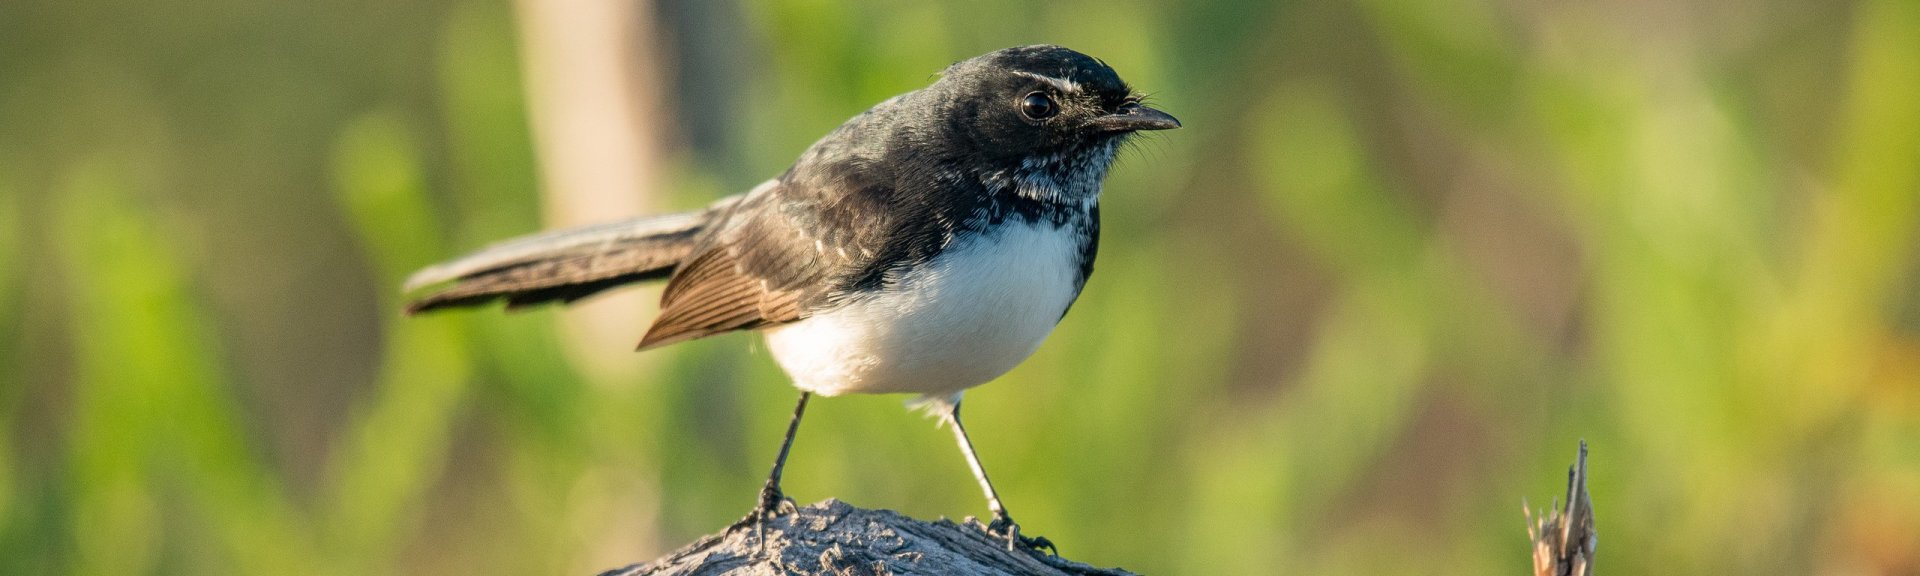 Willy wagtail. [Photo](https://www.flickr.com/photos/paul_e_balfe/34012707775): [Paul Balfe](https://www.flickr.com/photos/paul_e_balfe/) / [CC BY 2.0](https://creativecommons.org/licenses/by/2.0/)